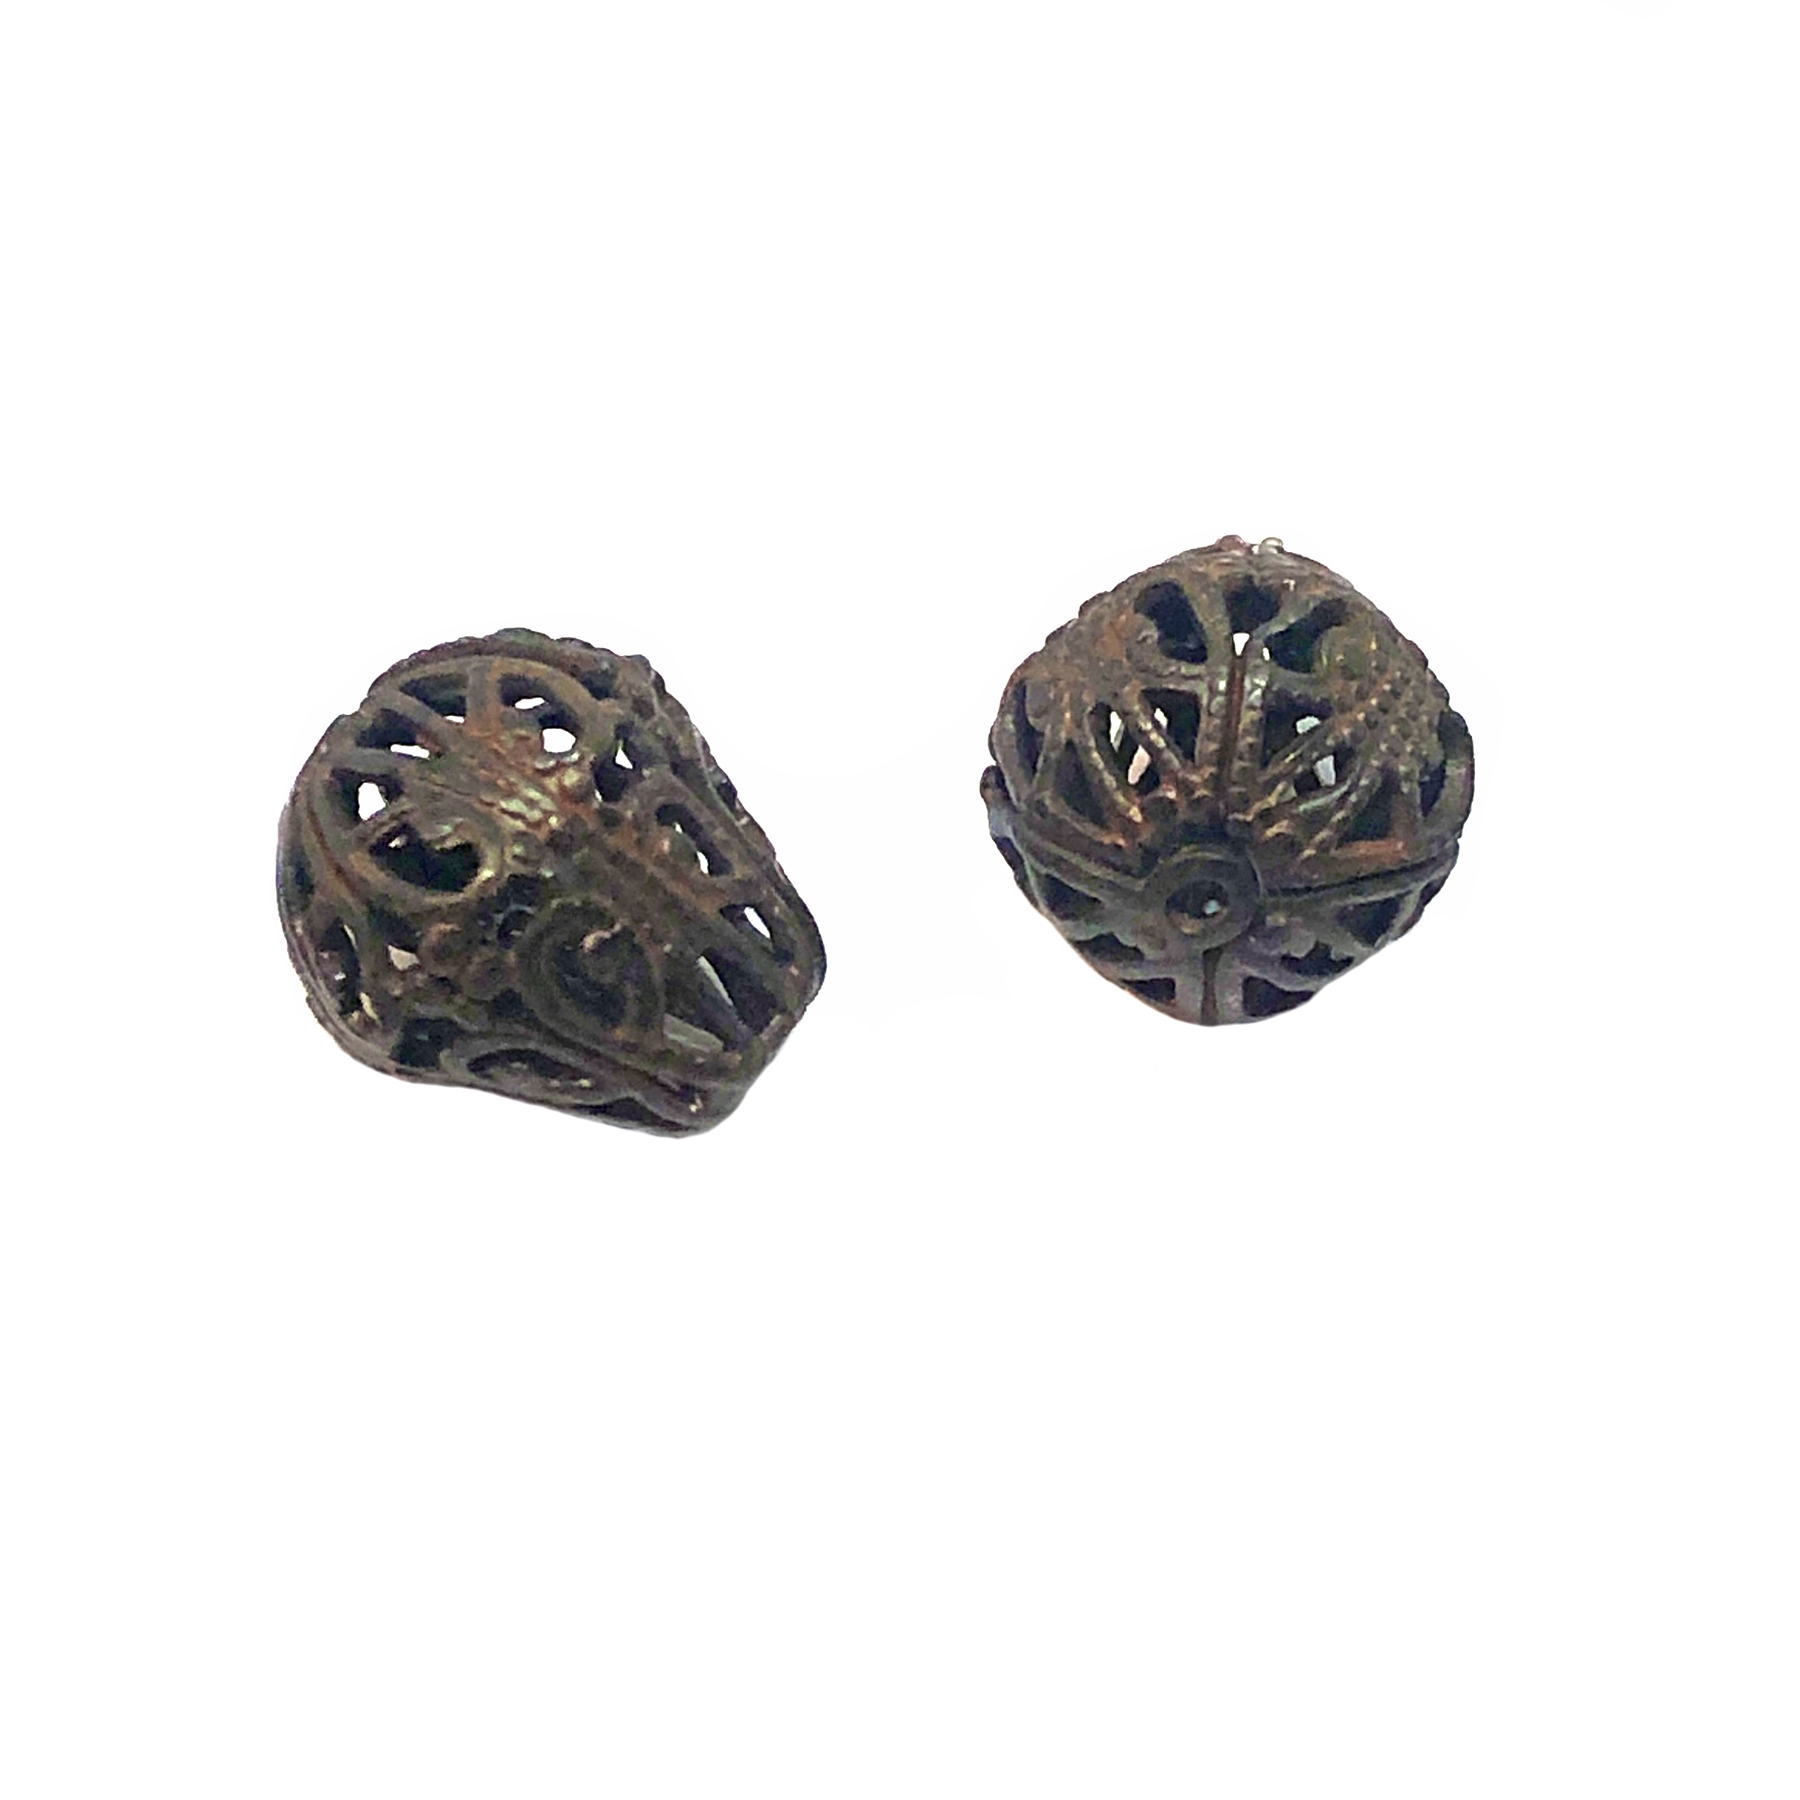 brass beads, filigree beads, chocolate brass, choxie, jewelry making, B'sue Boutiques, jewelry supplies, metal beads,  jewelry findings, altered art, mixed media jewelry, vintage jewelry supplies, filigree, US Made, nickel free, 03332